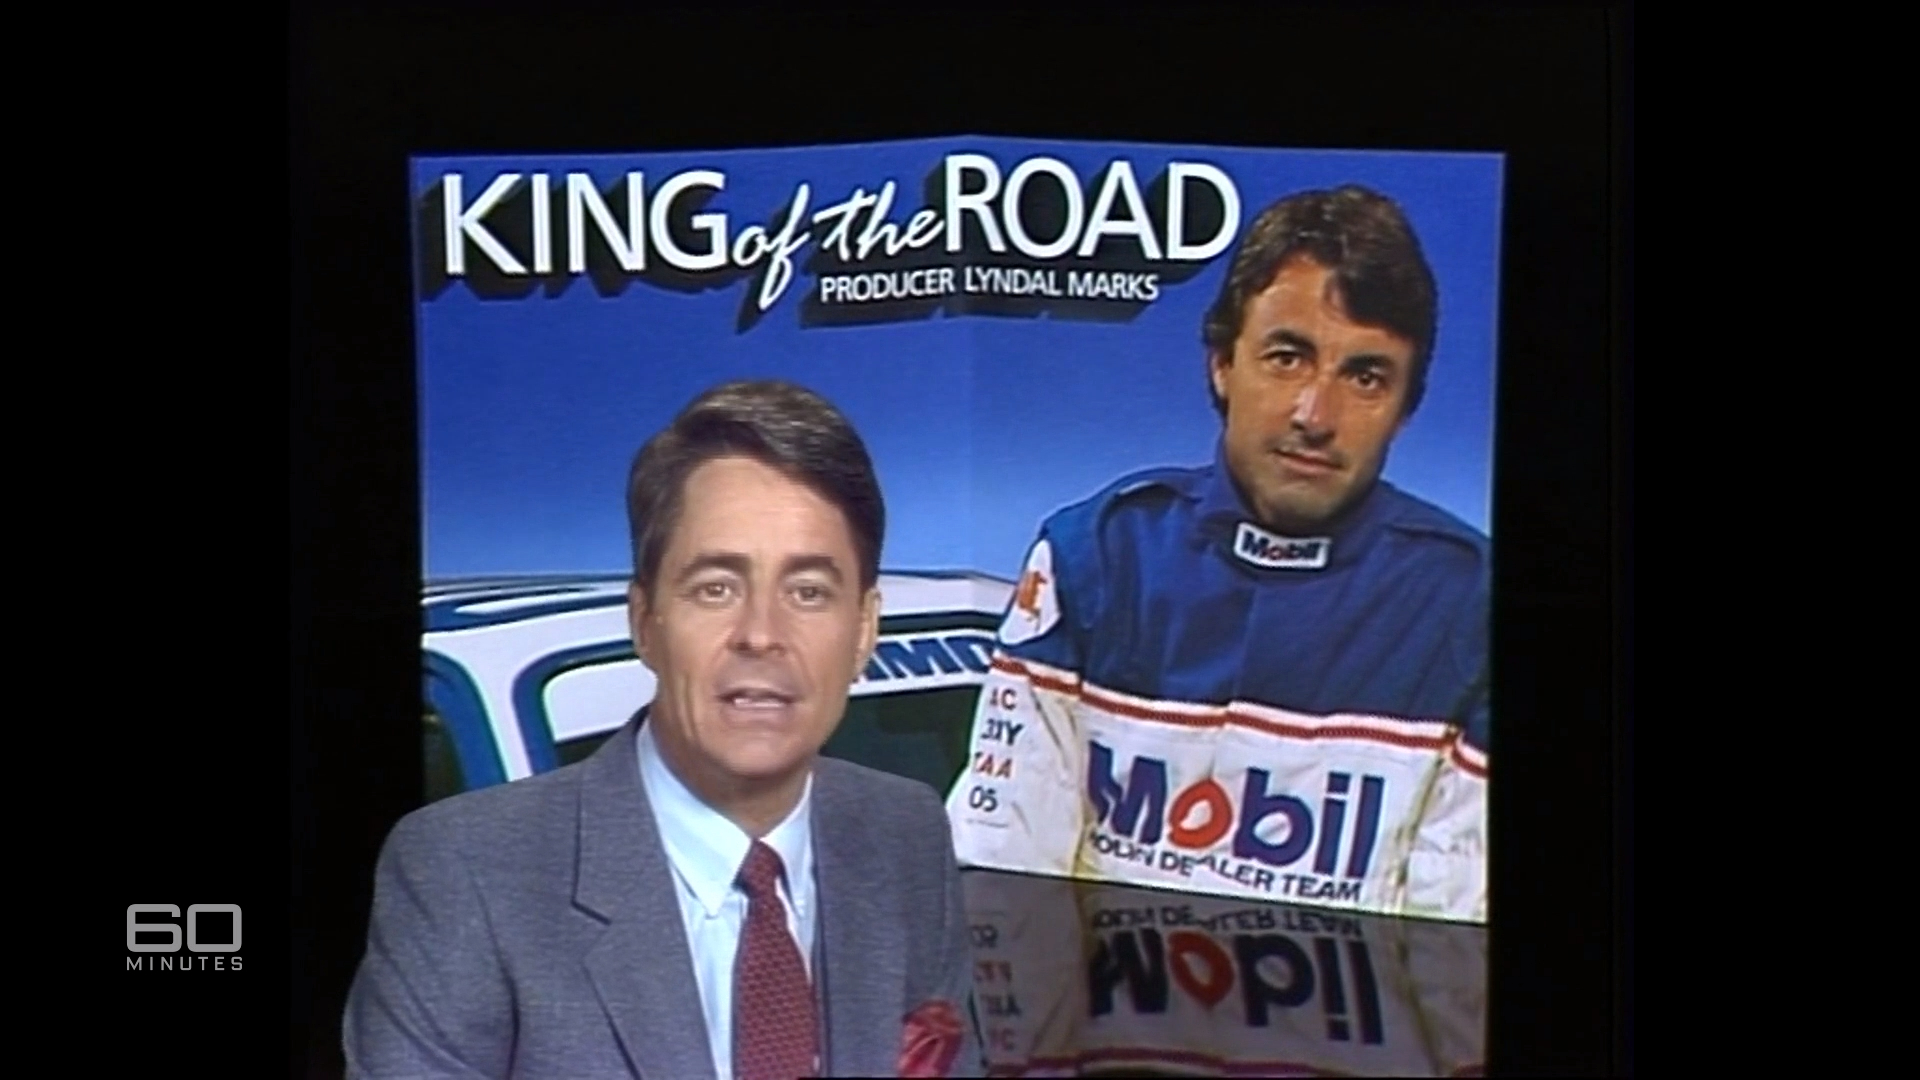 King of the Road (1986)